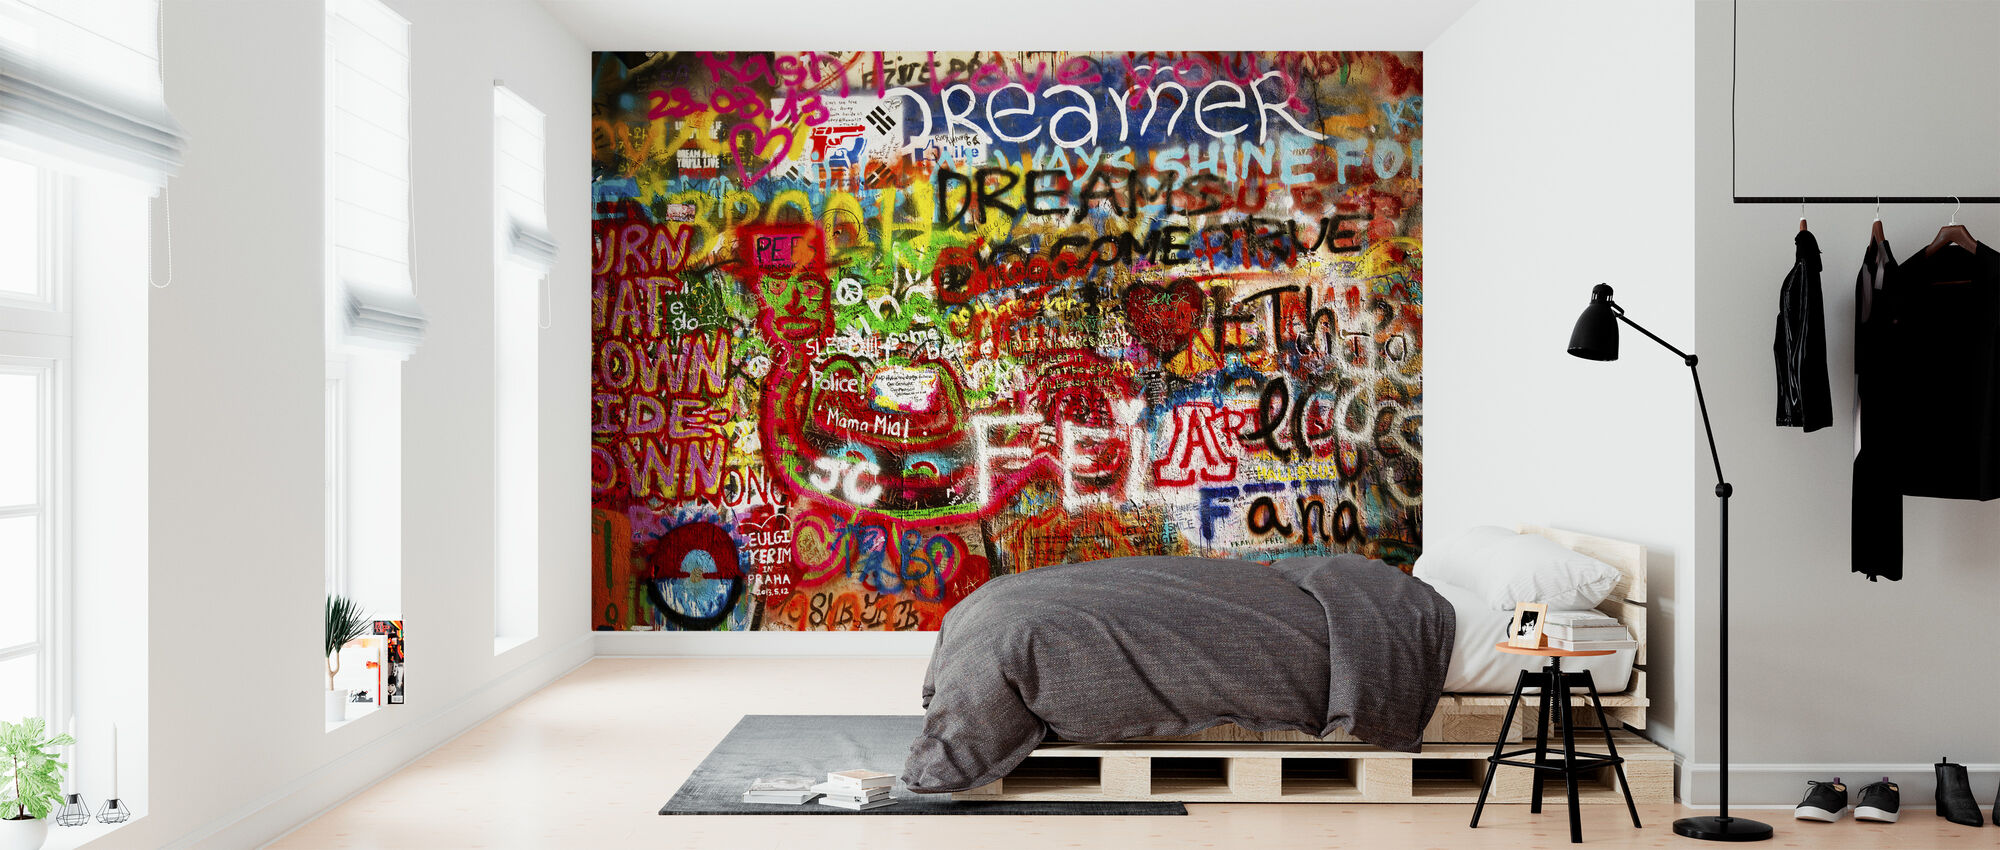 Graffiti Wall - Wallpaper - Bedroom